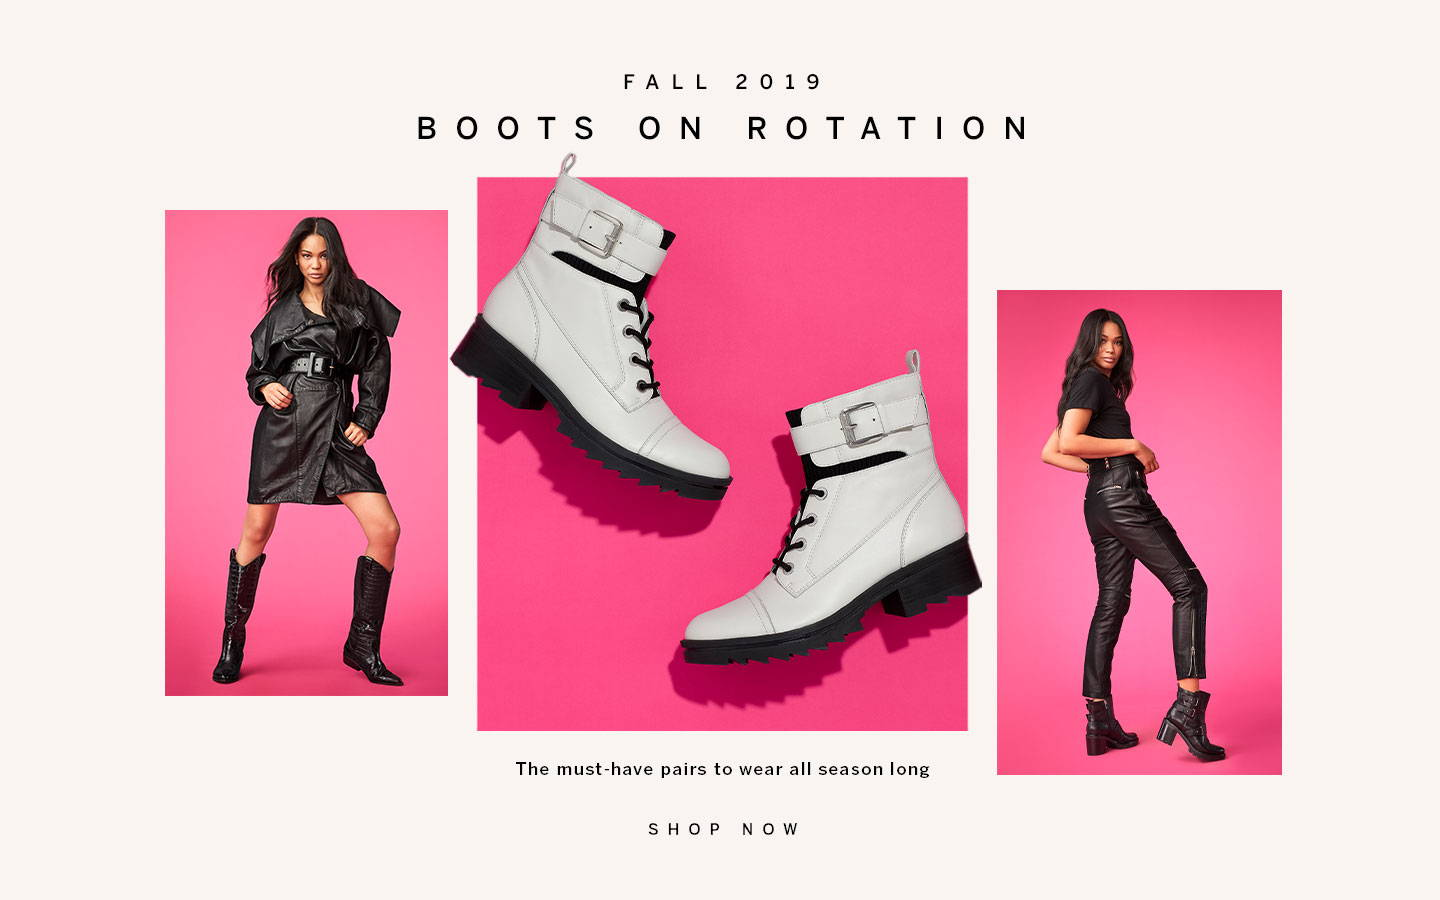 Boots on Rotation